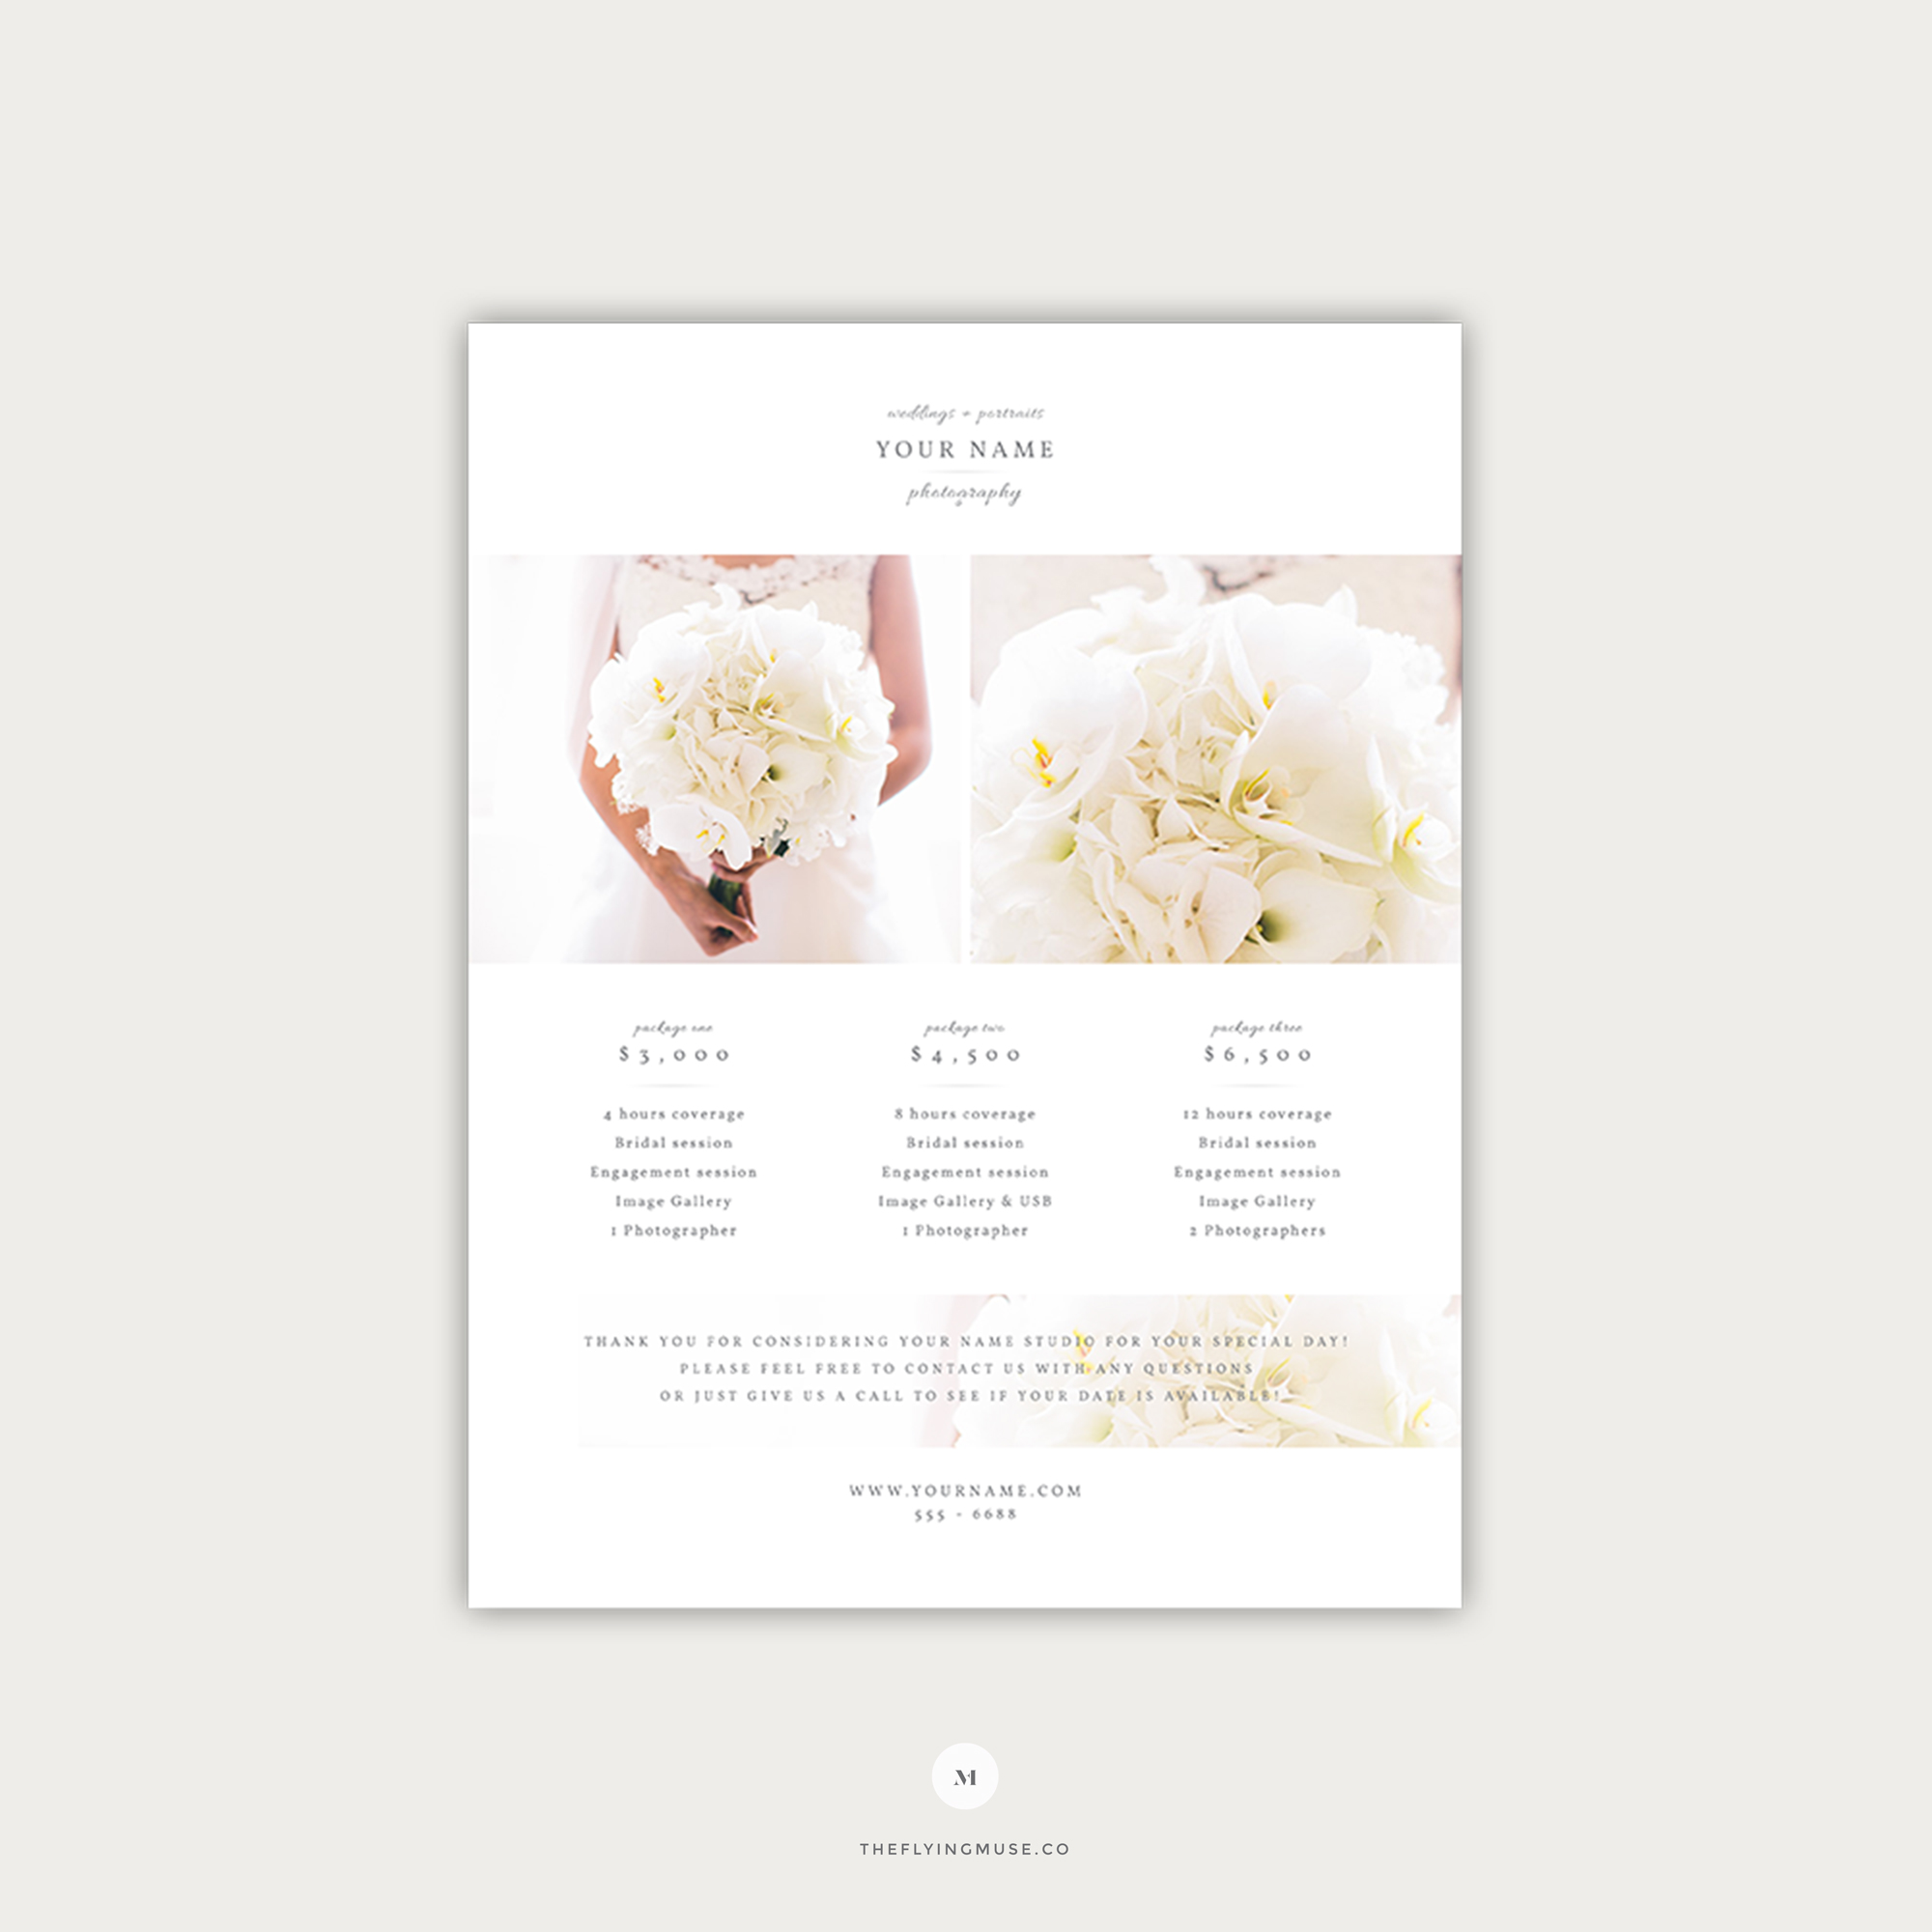 elegant wedding photography pricing guide template the